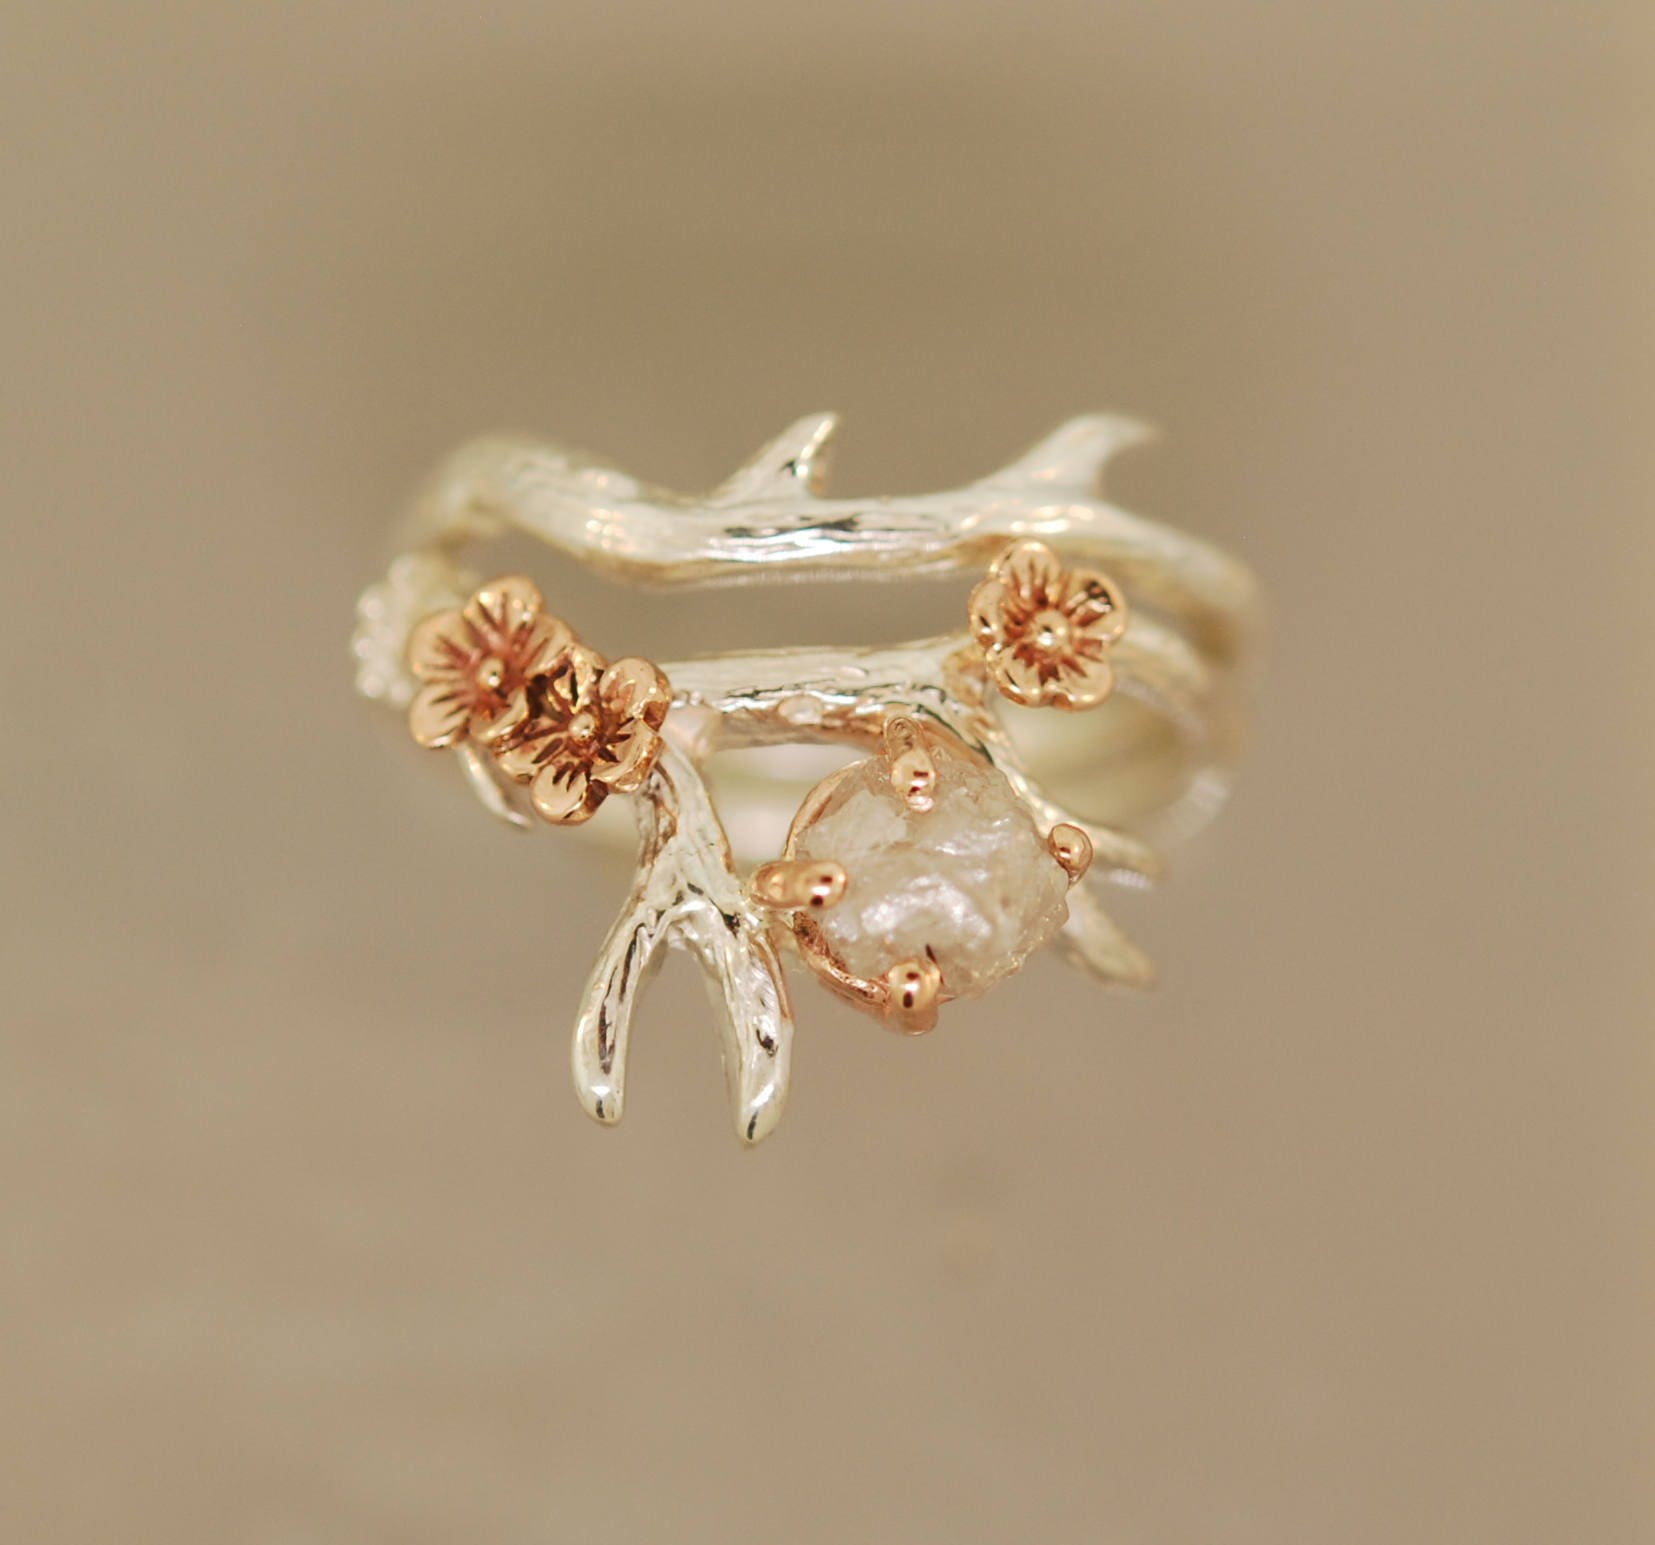 Antler Ring 2 with flowers cherry blossom ring rough diamond